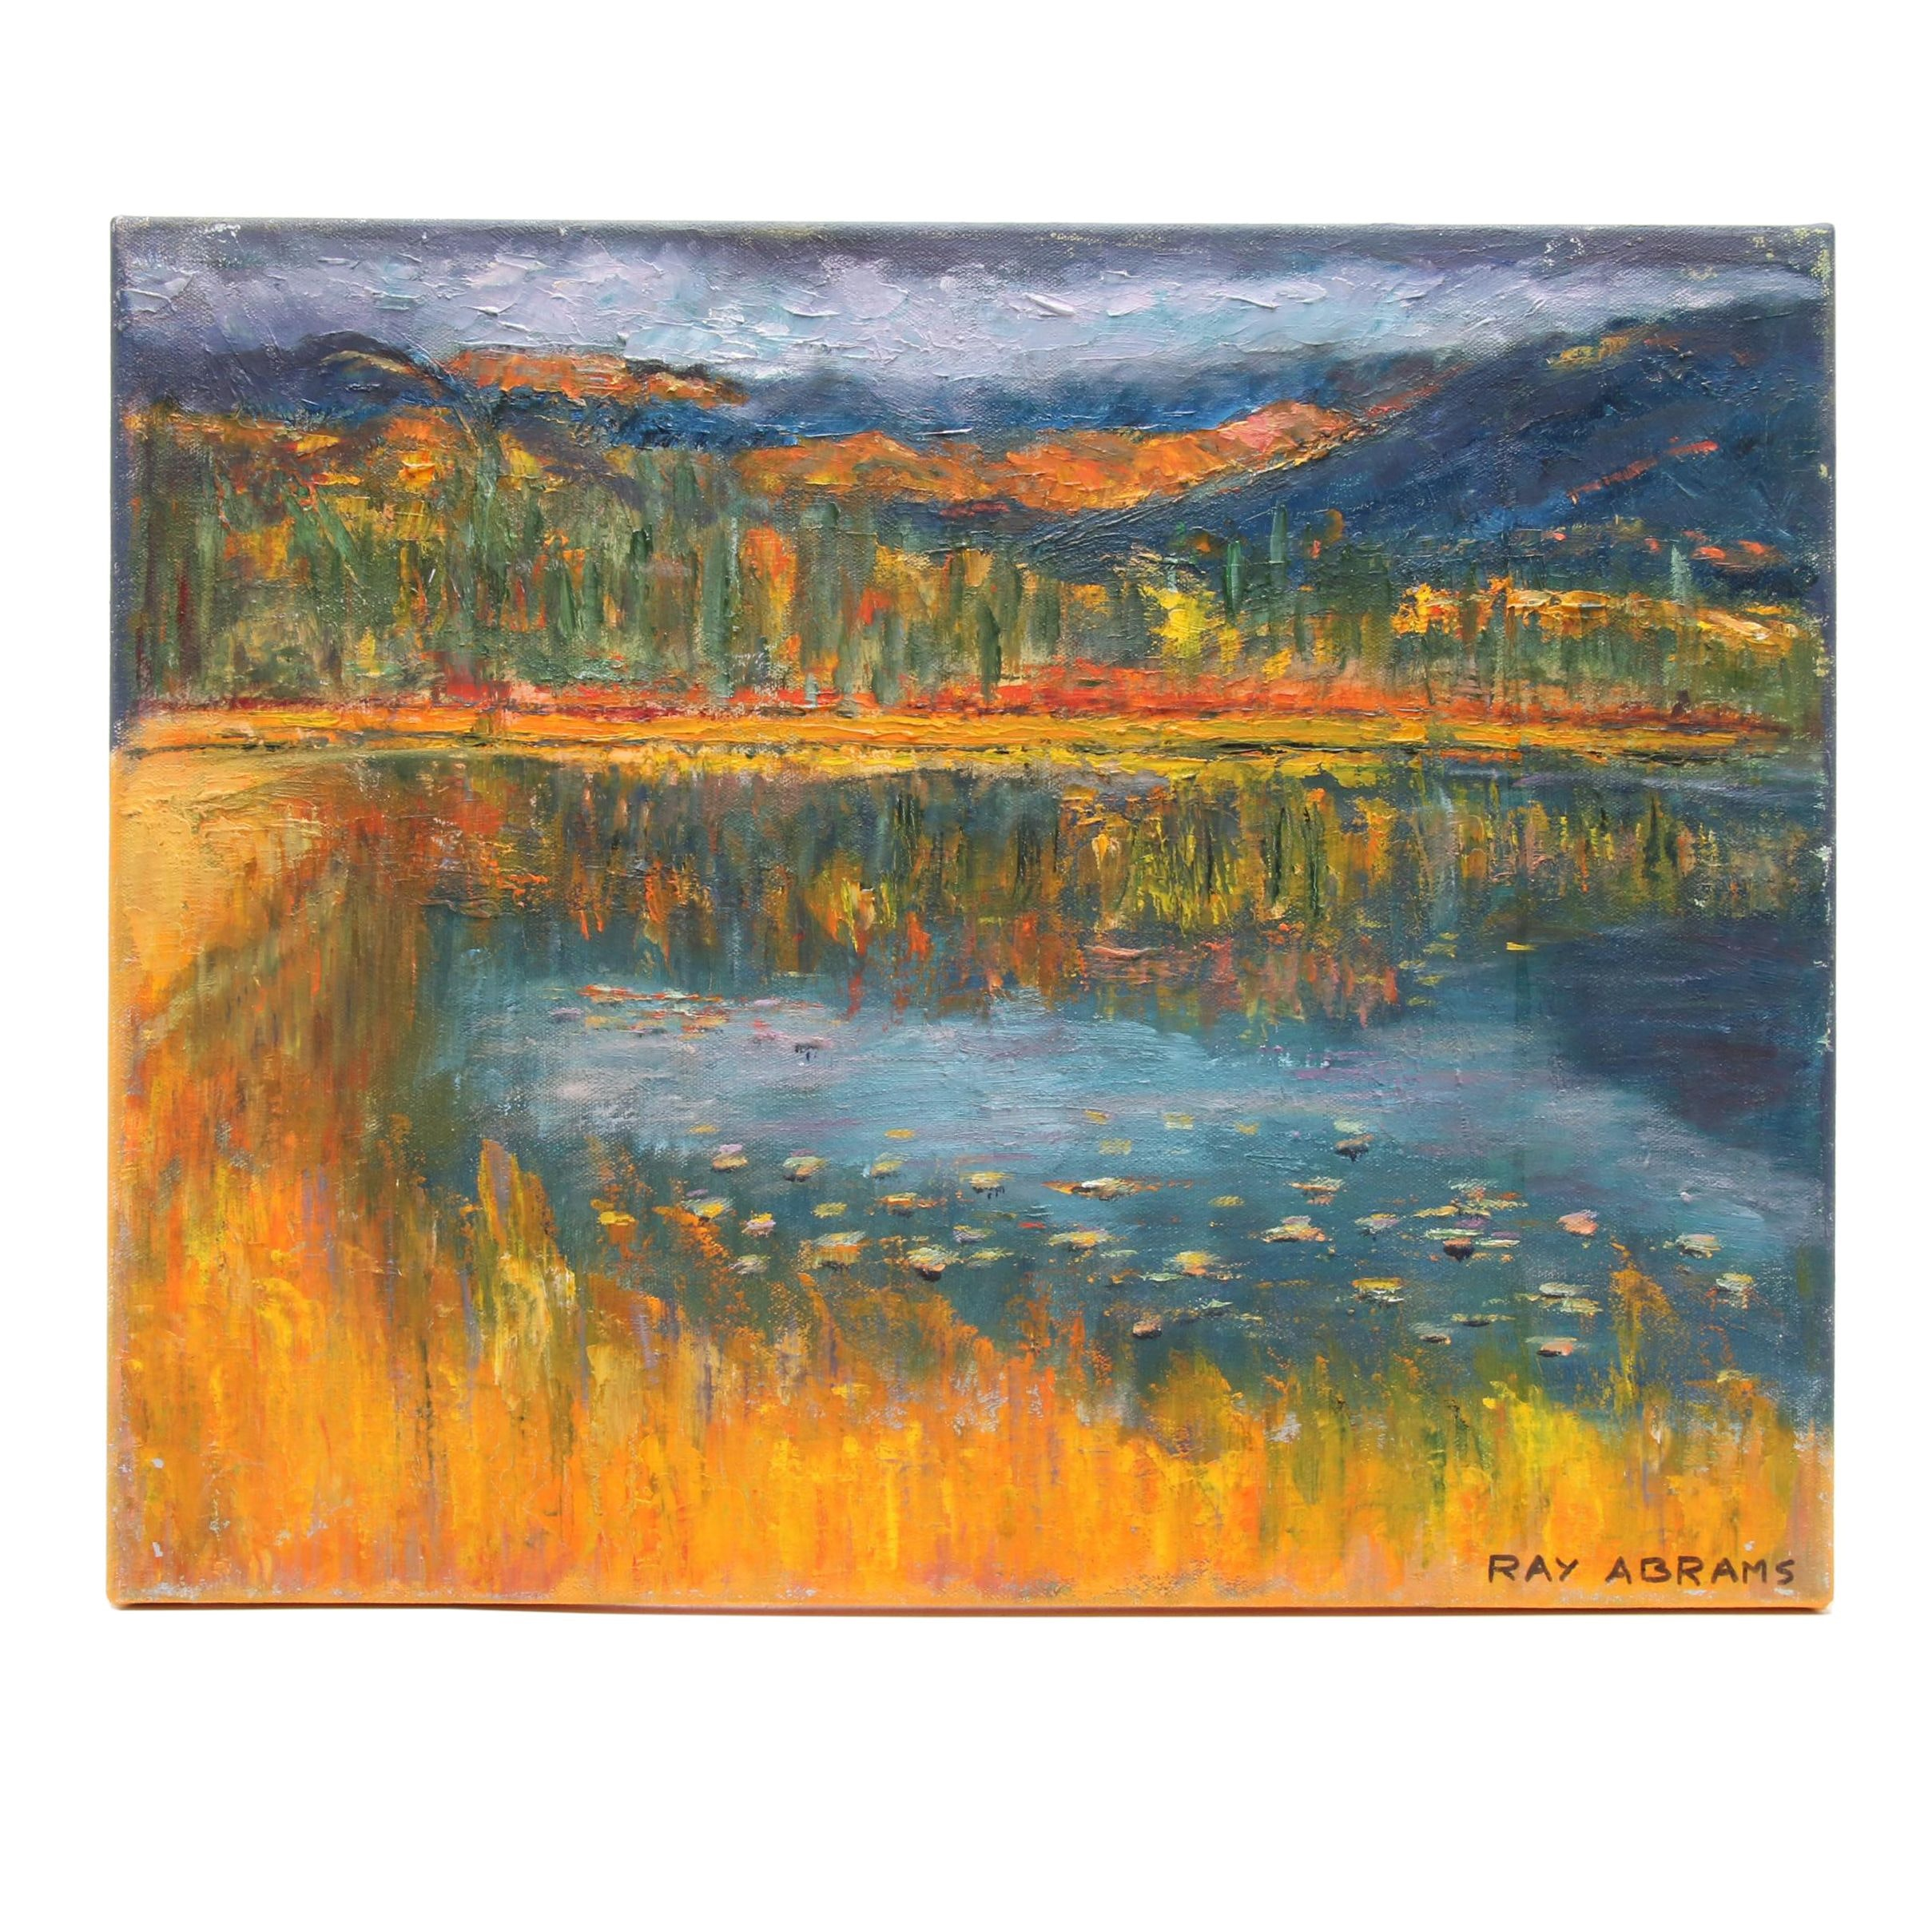 Ray Abrams Landscape Oil Painting